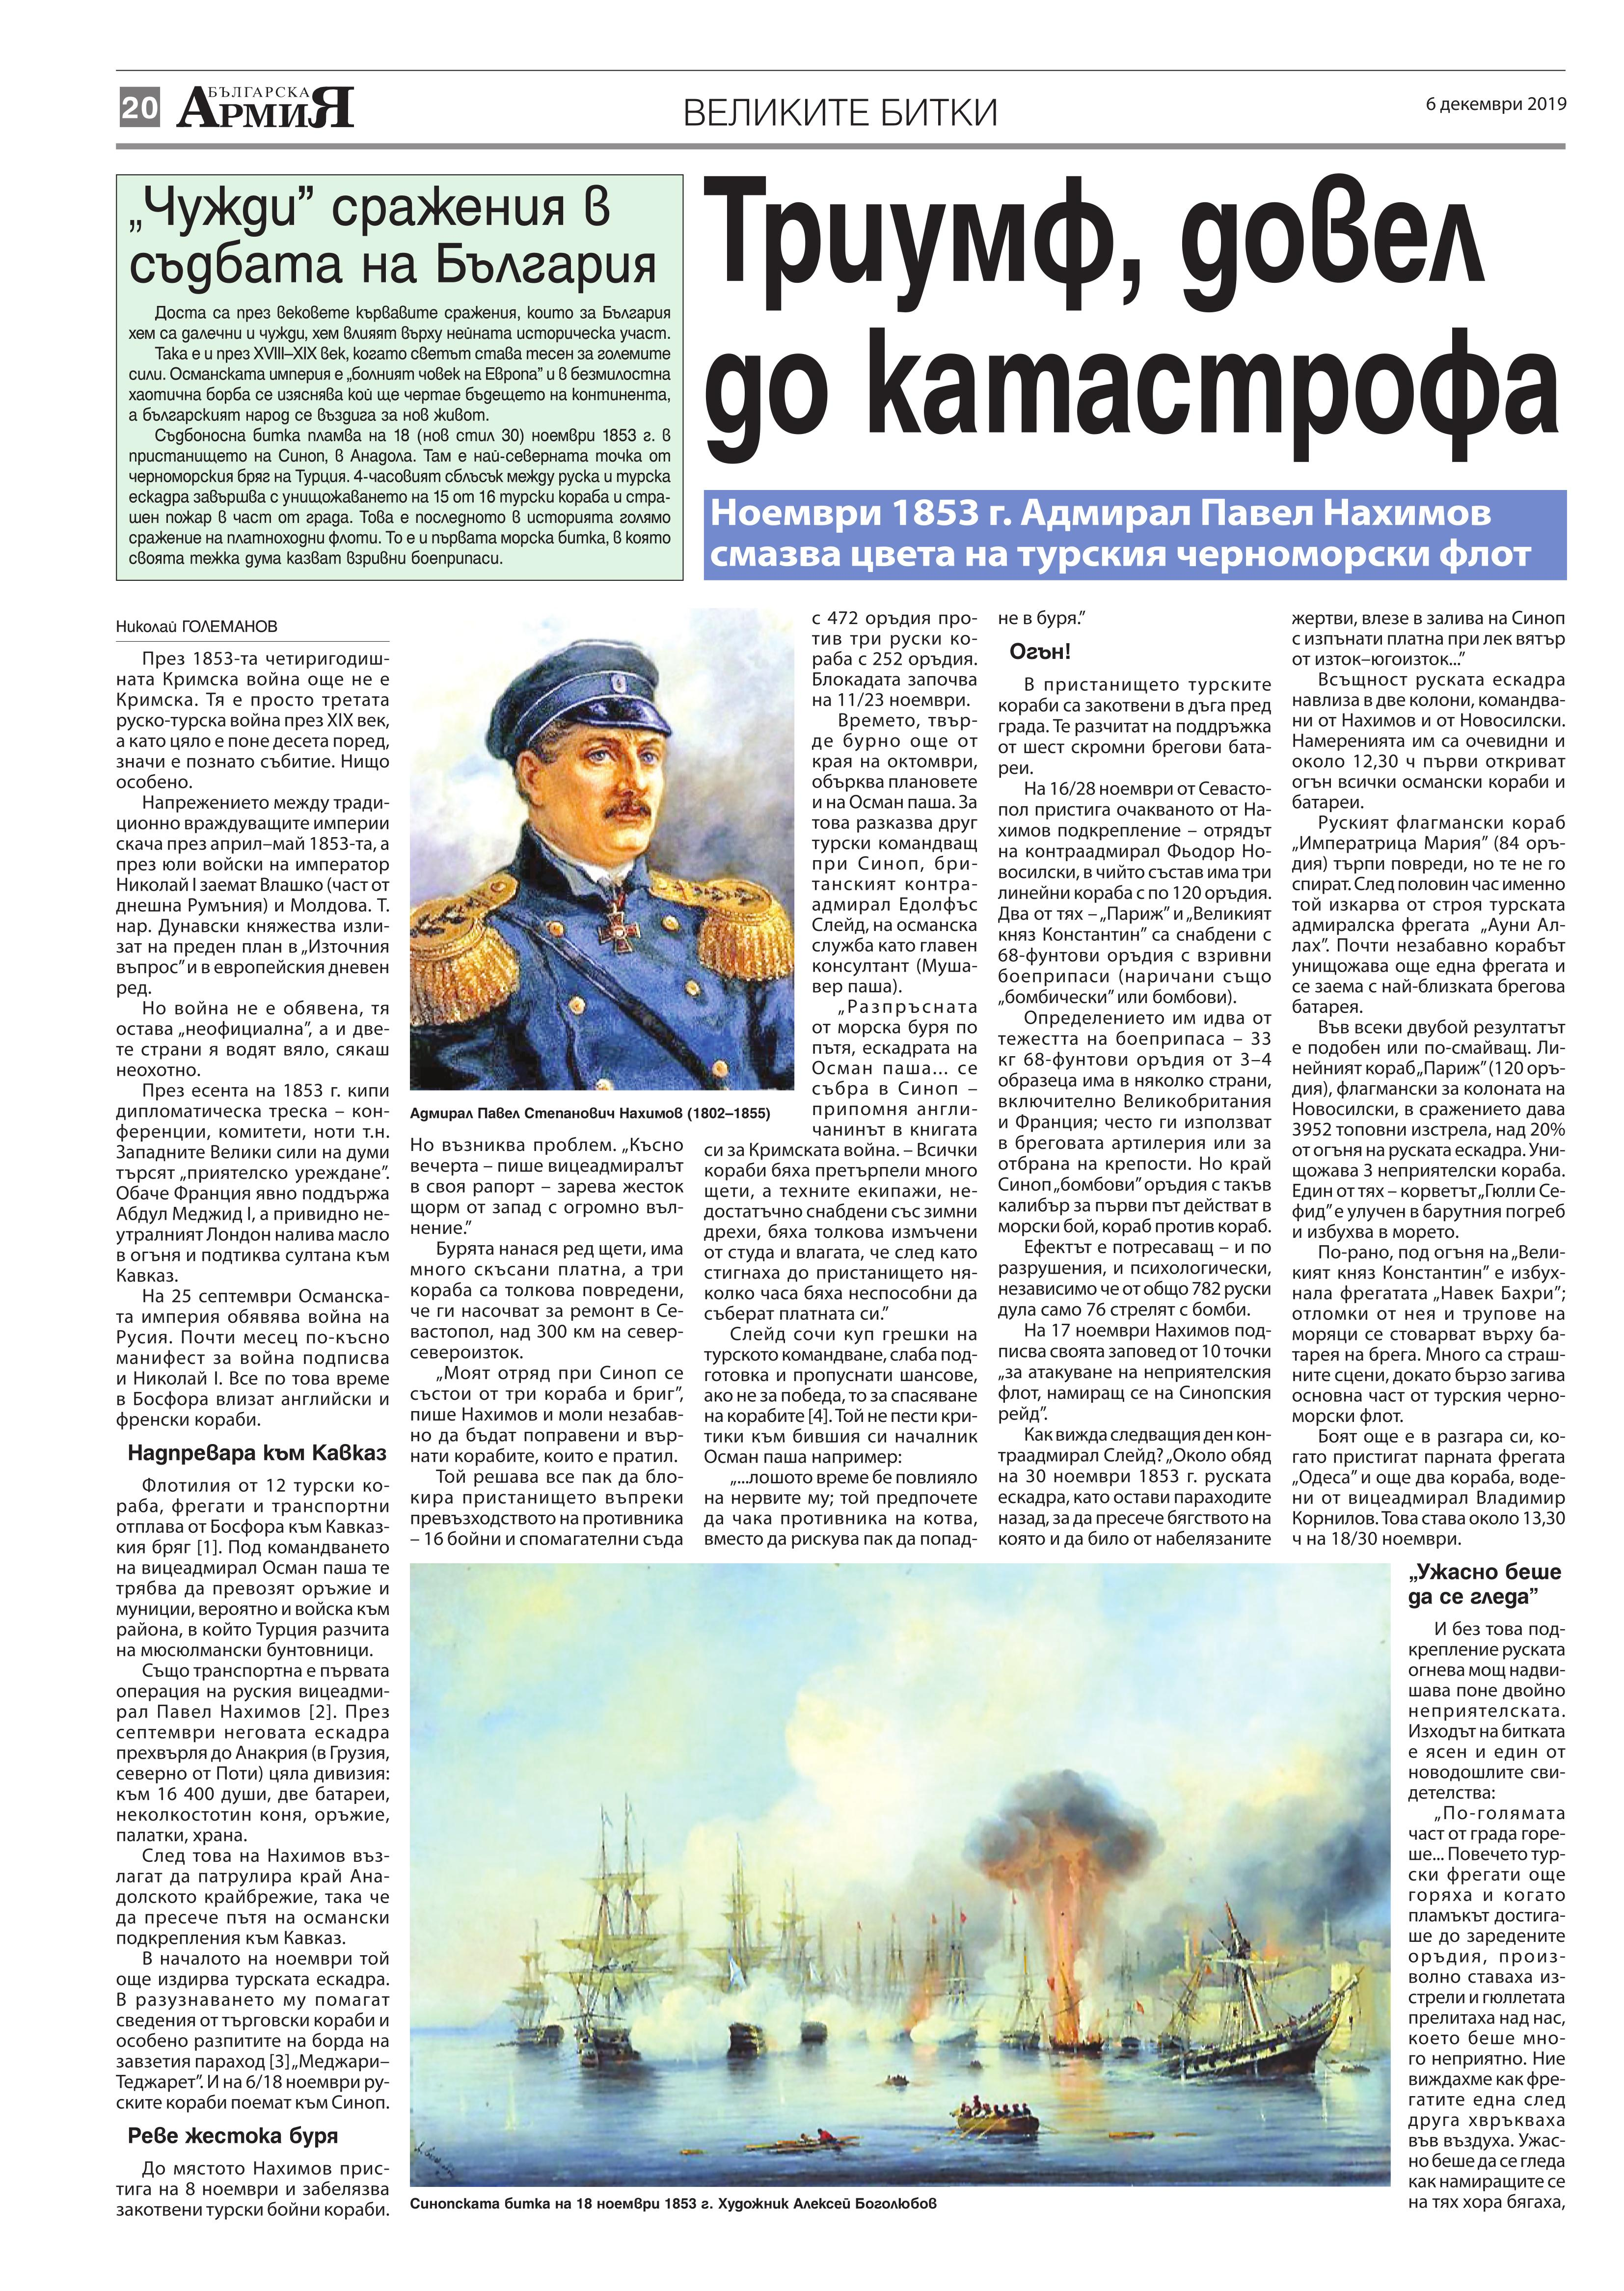 https://armymedia.bg/wp-content/uploads/2015/06/20.page1_-118.jpg